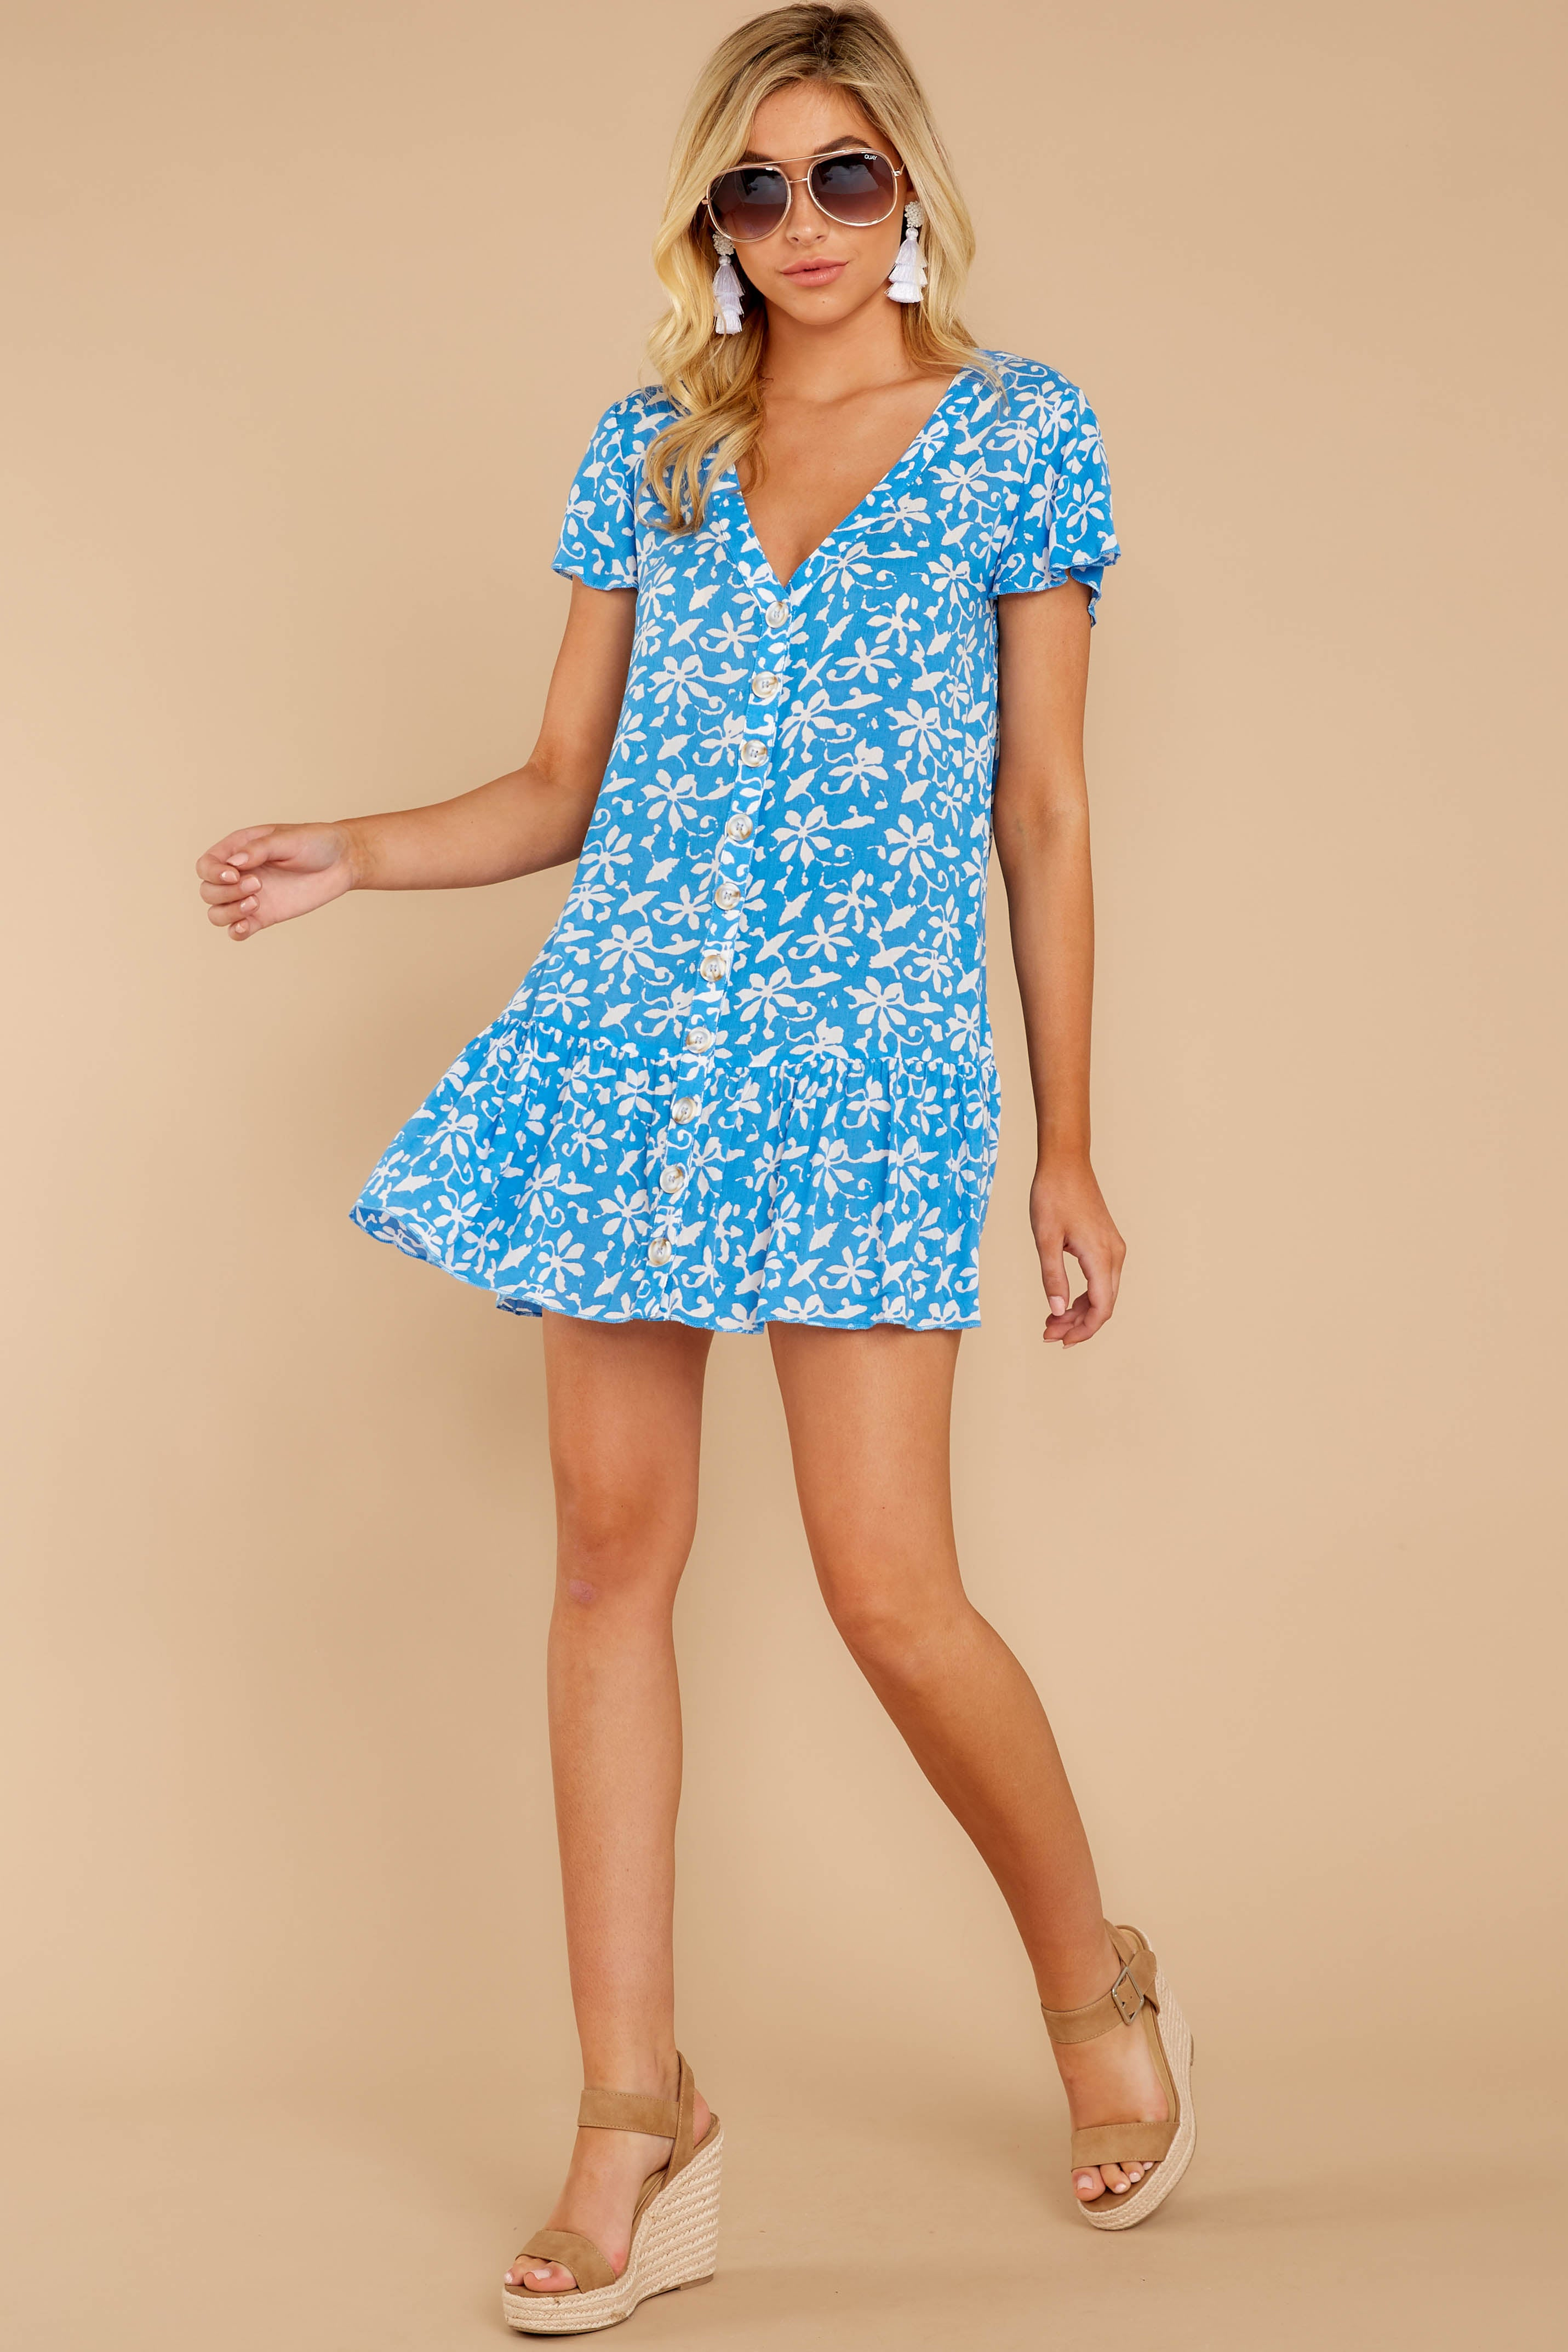 3 Sweeter By The Hour Bright Blue Print Dress at reddress.com